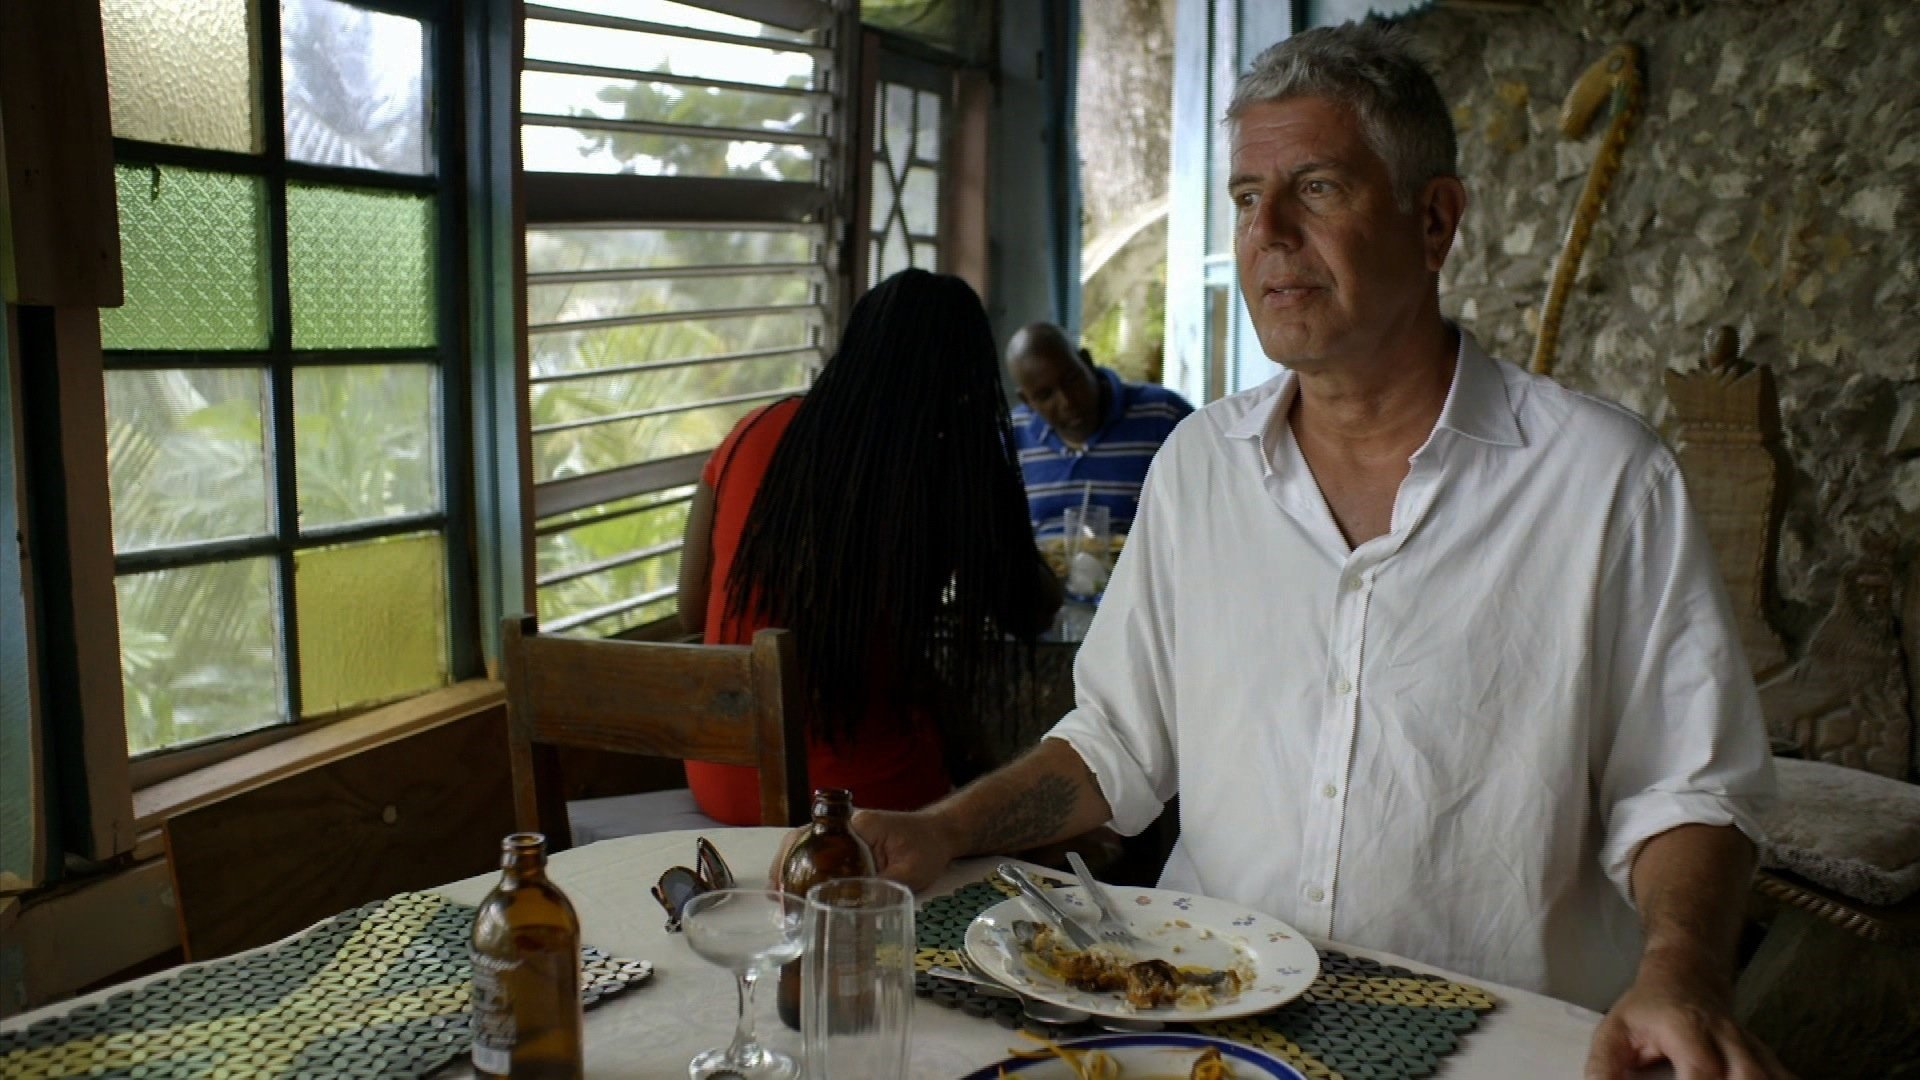 Anthony Bourdain a gifted storyteller and writer who took CNN viewers around the world died at age 61. Bourdain is seen here in the CNN series